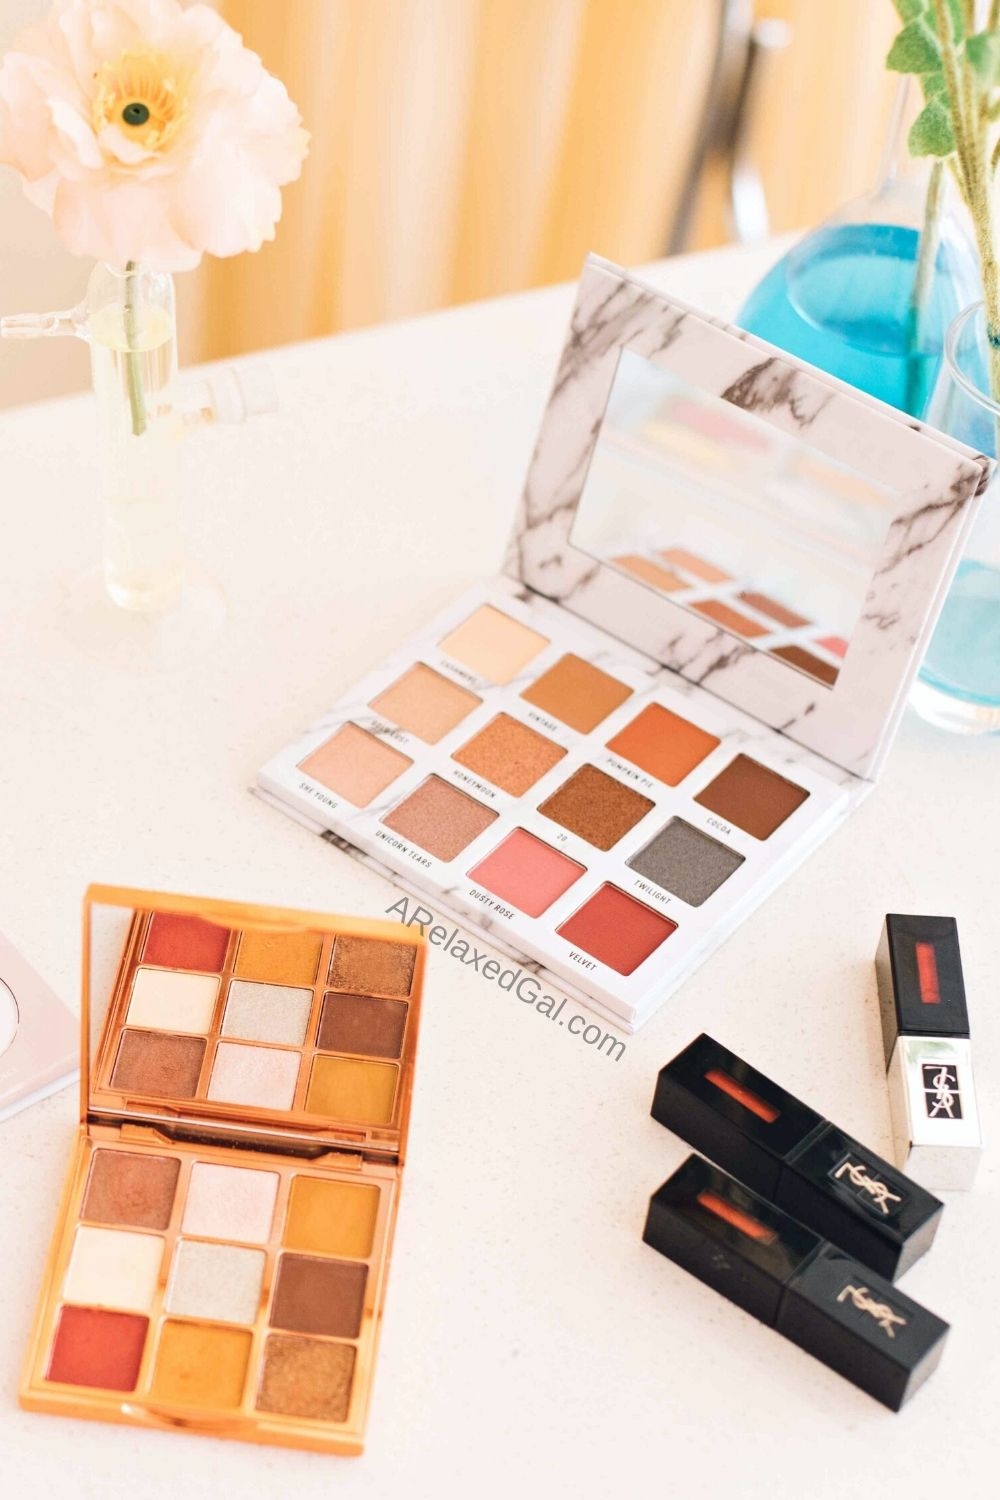 Fall Drugstore Makeup For Deeper Skin Tones   A Relaxed Gal